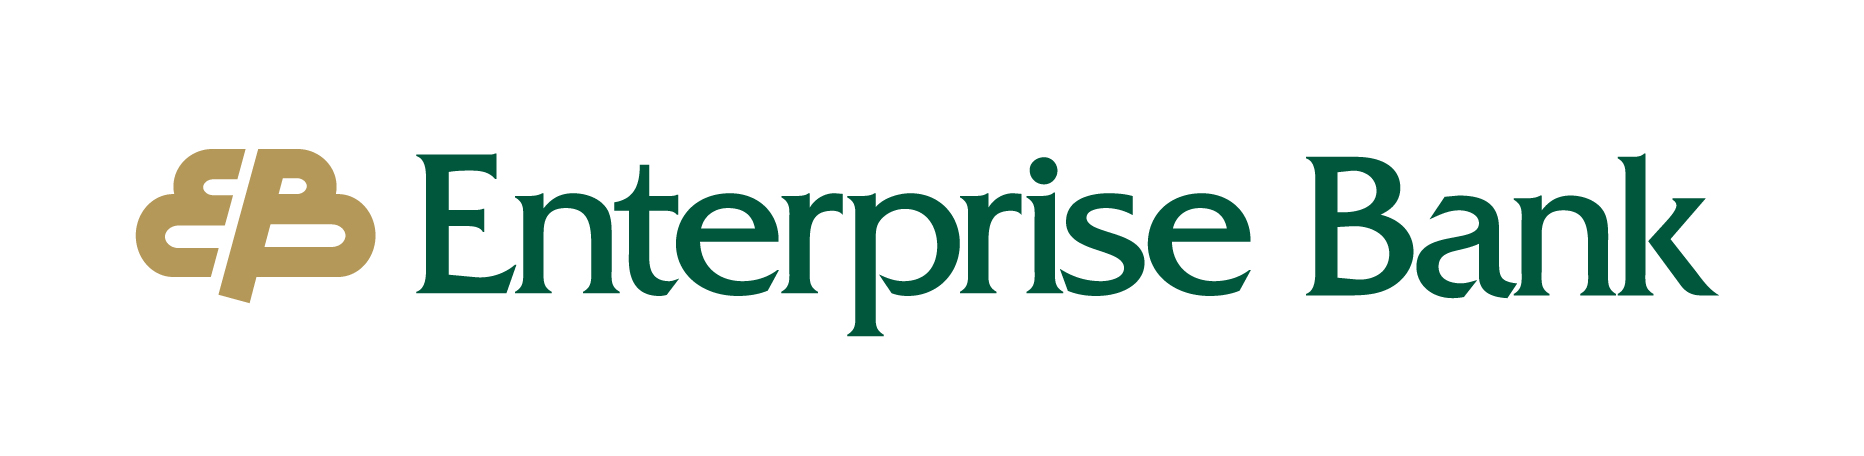 enterprise bank.jpg